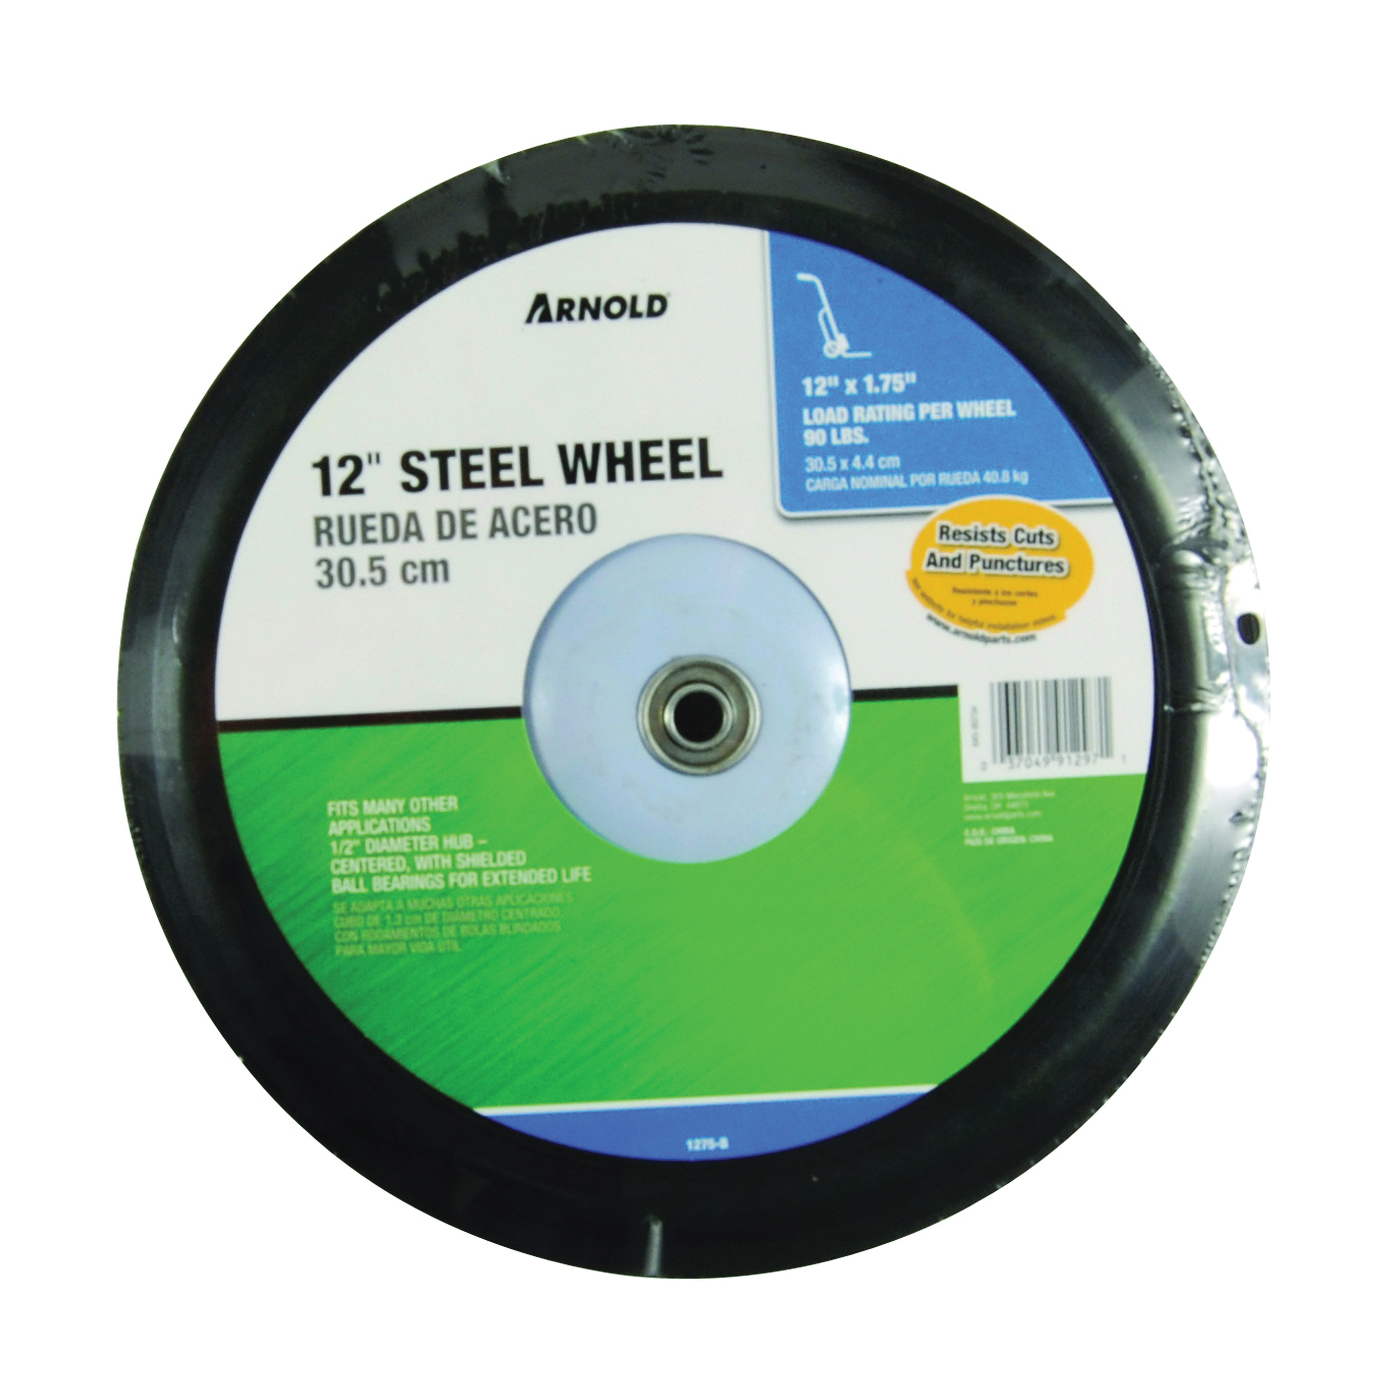 Picture of ARNOLD 1275-B Tread Wheel, Semi-Pneumatic, Steel, For: Lawn Mowers